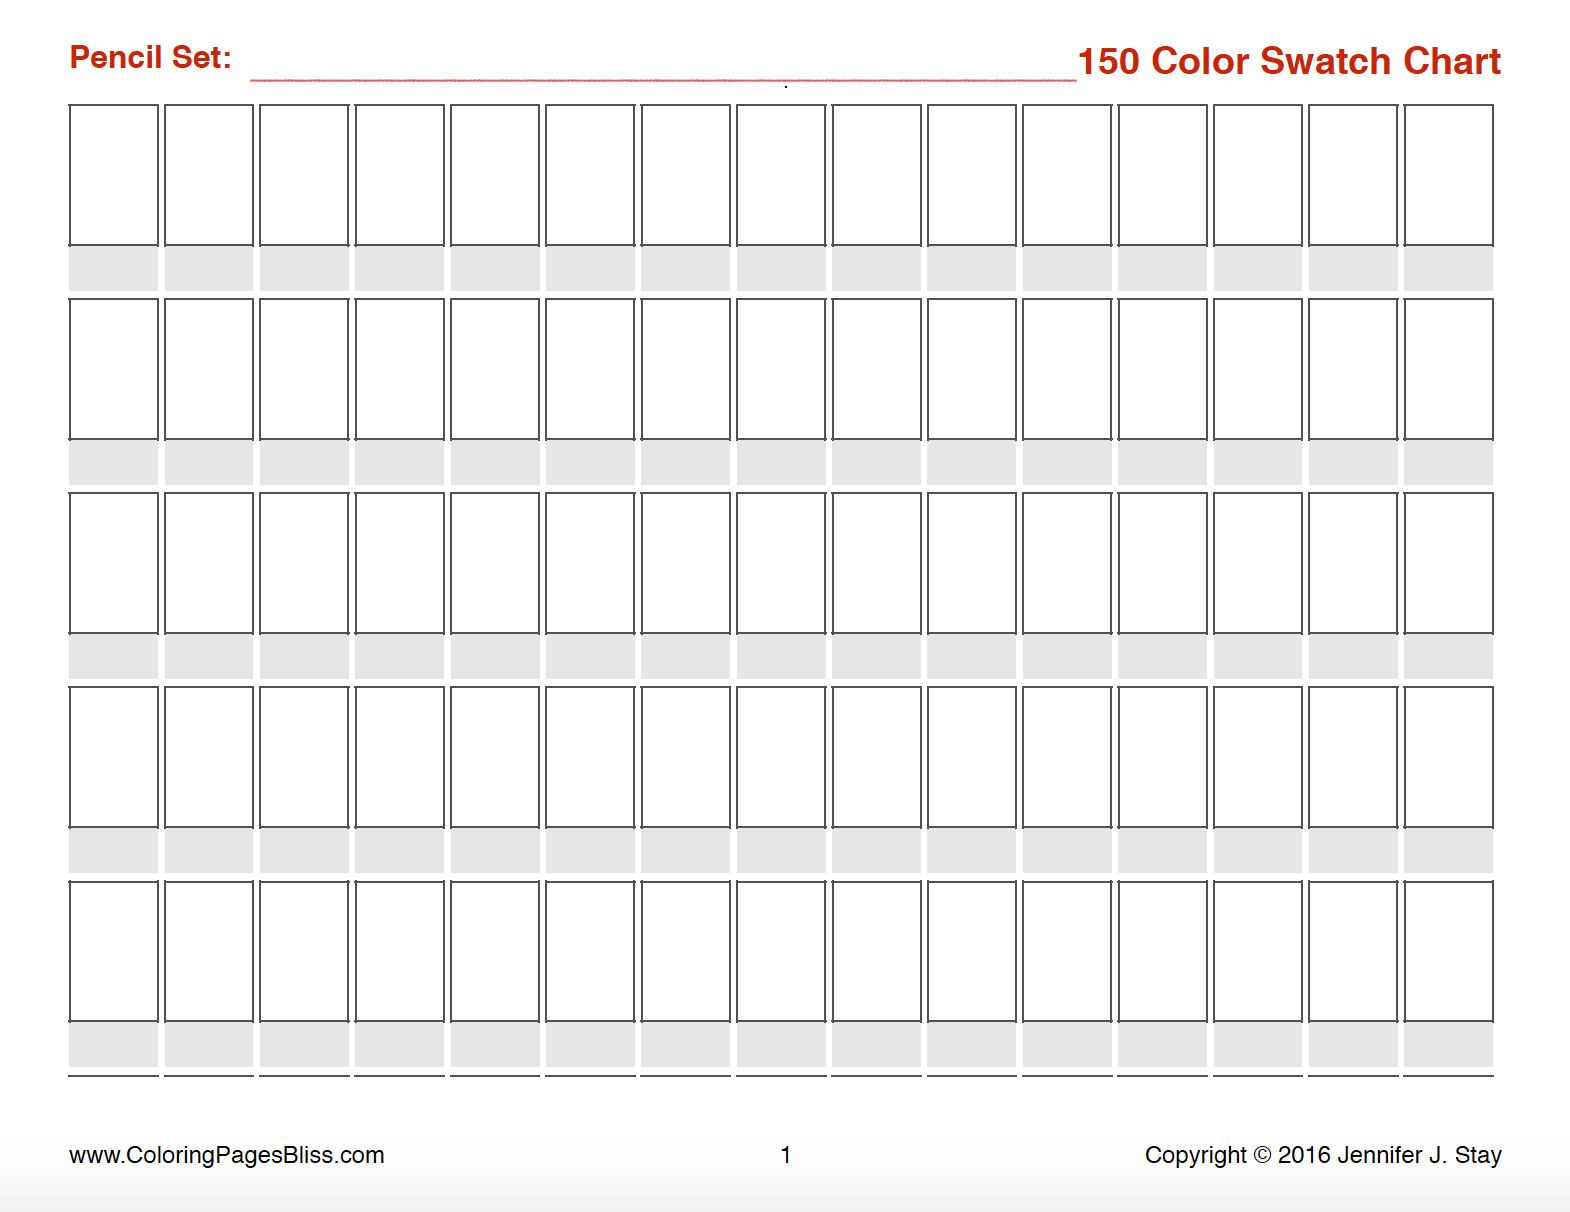 Generic 150 color swatch chart color pencil ideas pinterest generic 150 color swatch chart nvjuhfo Image collections